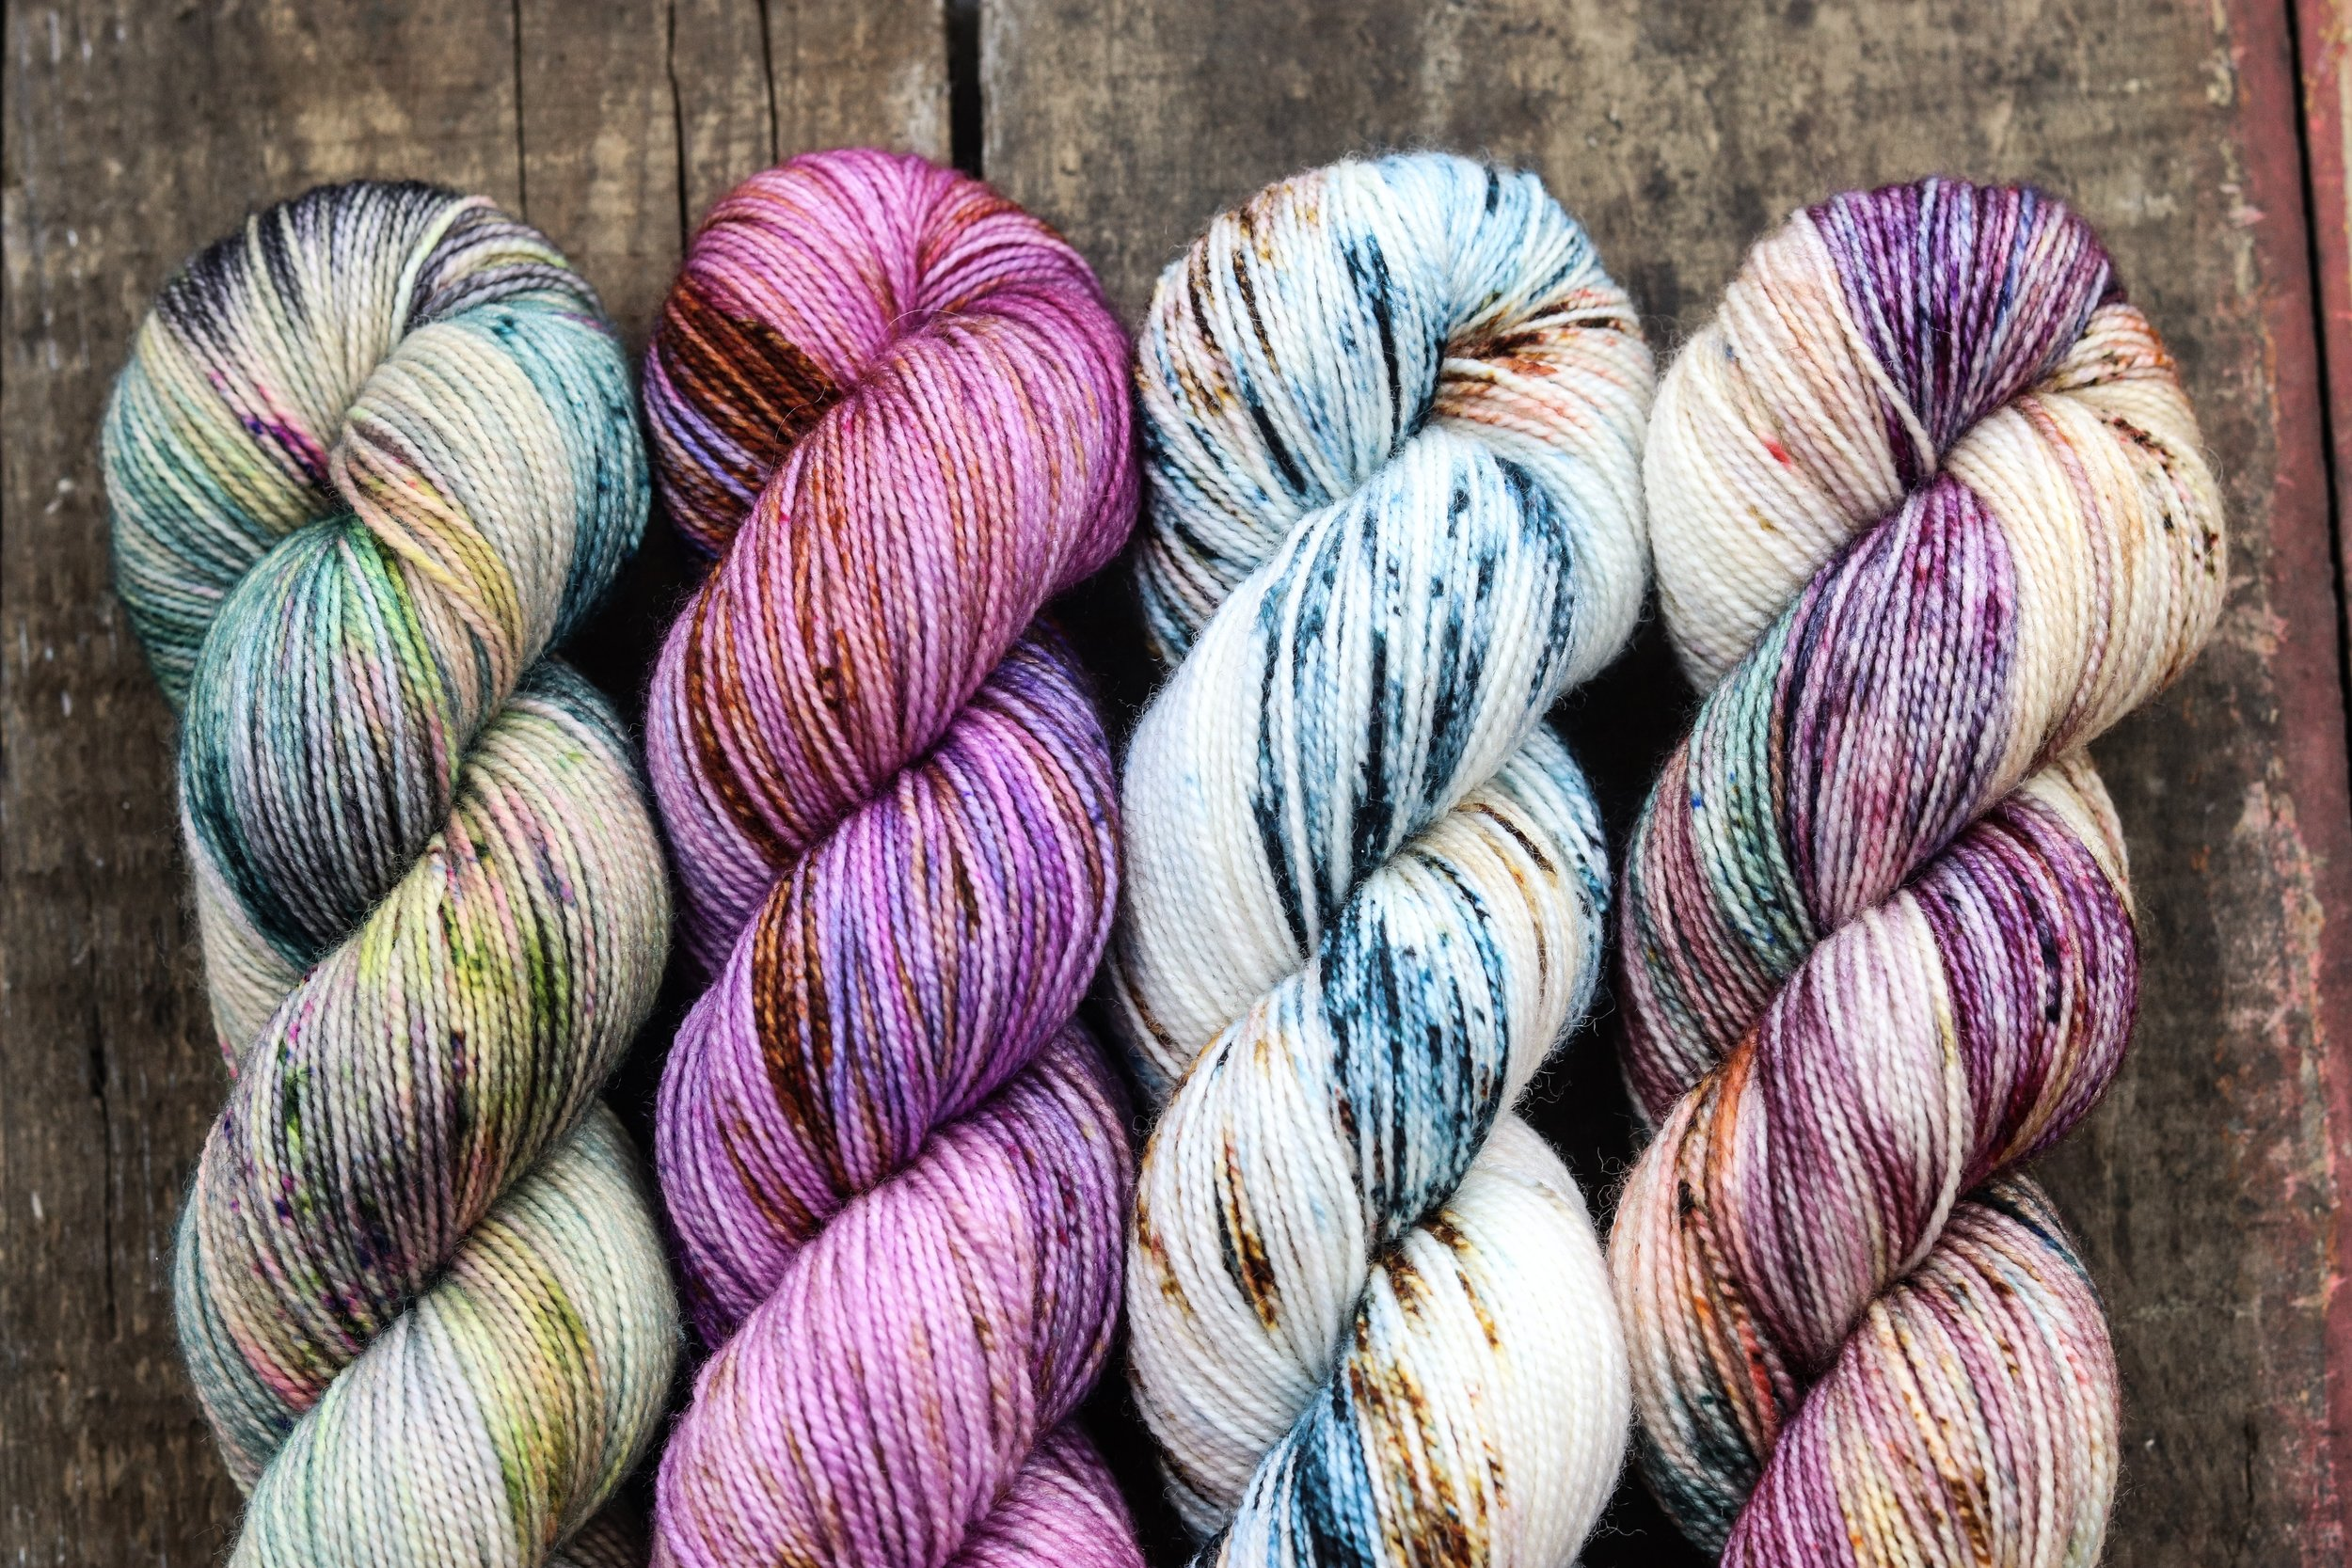 Soft & Cosy - $30 CAD - 80% Superwash Merino20% Nylon100 g = 400 yards2 ply fingering weightOur Soft & Cosy base is strong but so super soft and the cosy!! It has the most perfect 2 plytwist.